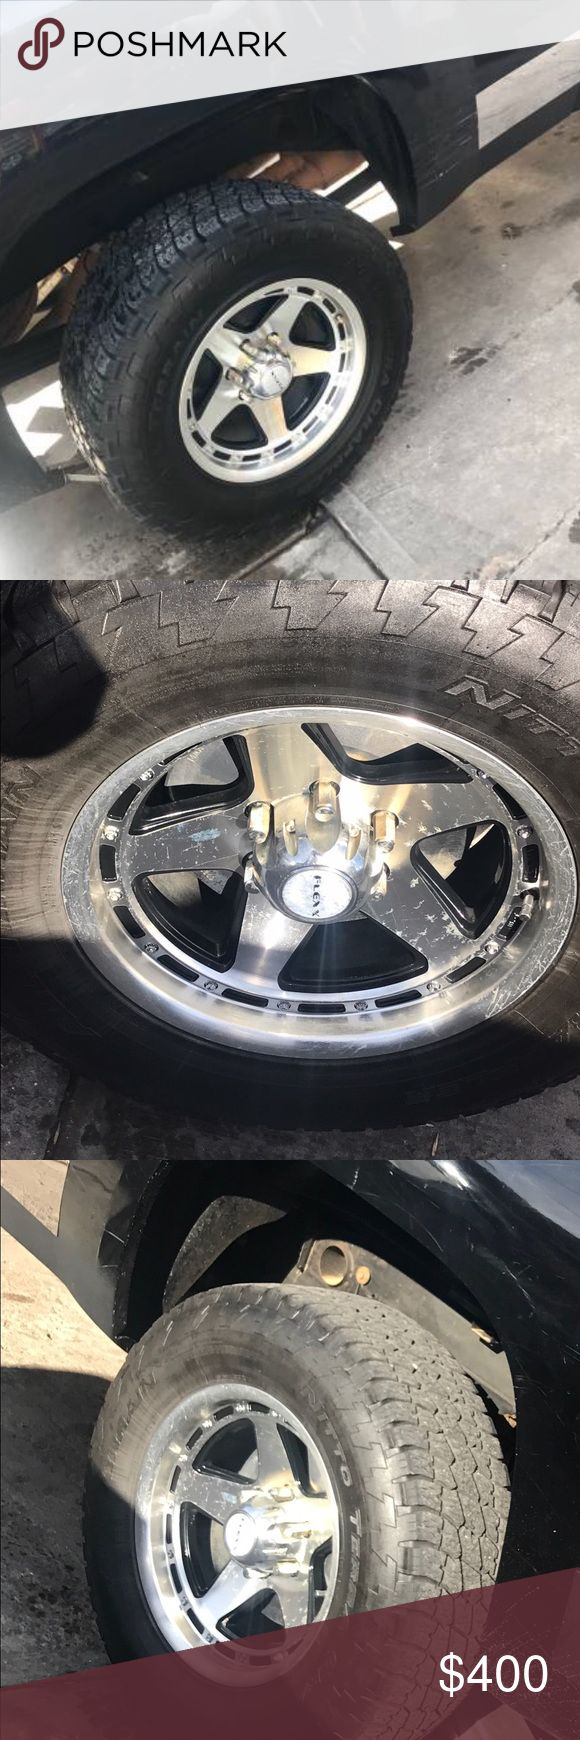 """18"""" set of 4 Truck rims Set of 4 Flexx rims 18"""".Clean 100% fine, just took them off my Gmc sierra as shown.Only three rims cover one is missing.7209008820 Other"""